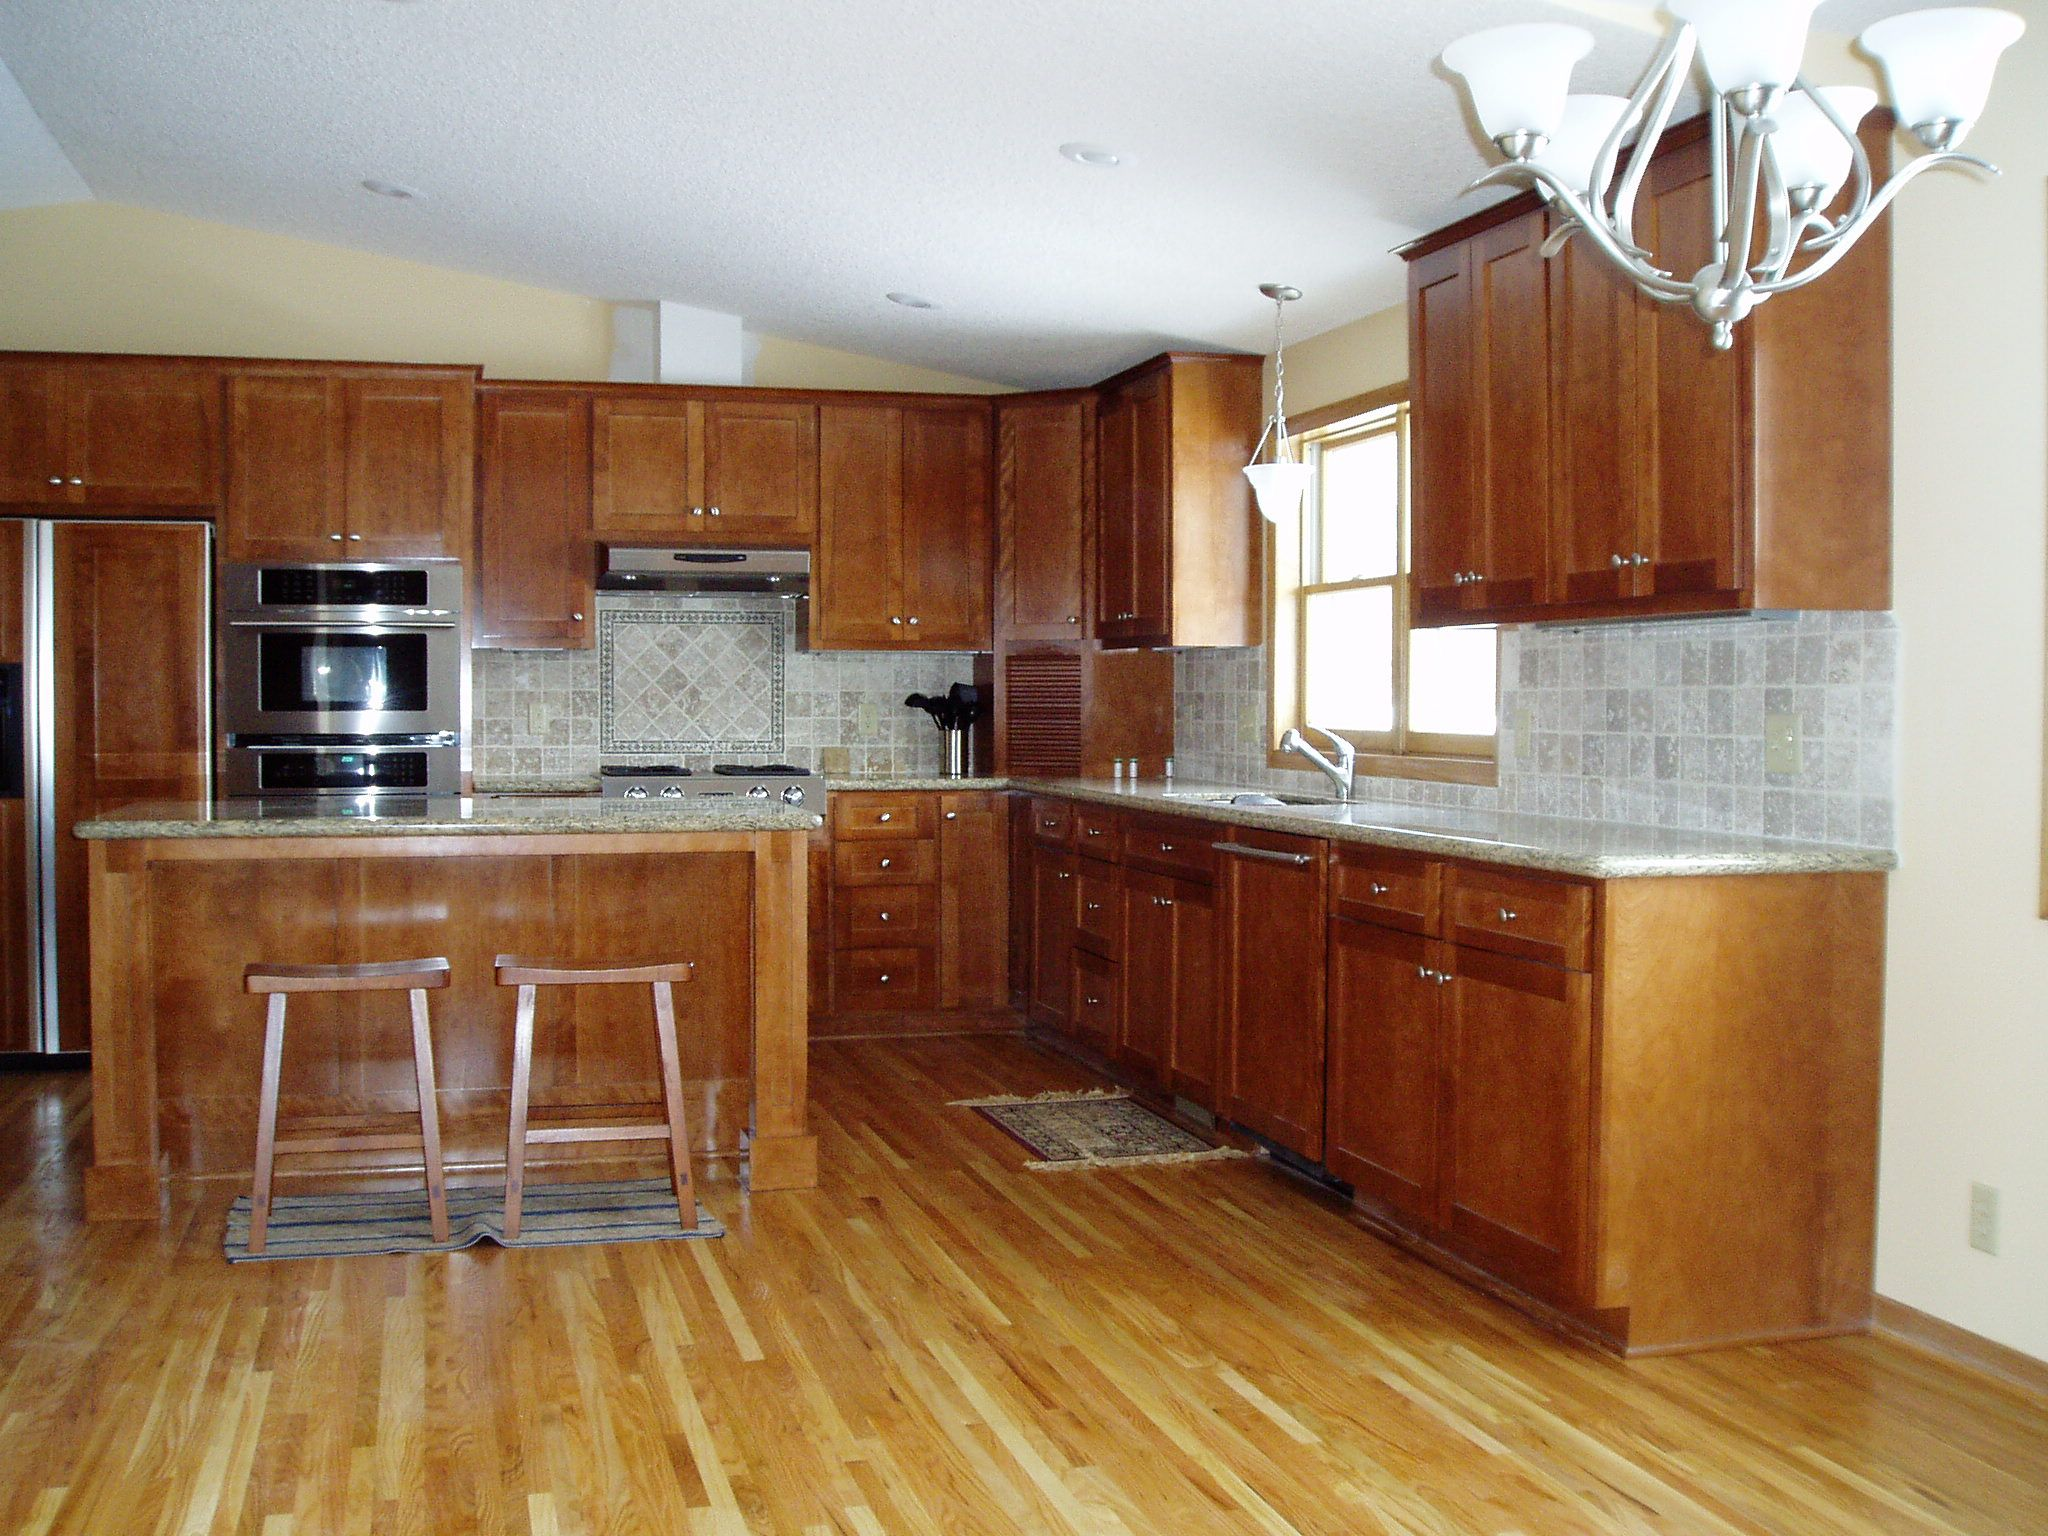 Wood Floors For Kitchens Wood Flooring That Goes Well With Honey Oak Cabinets Dream Home